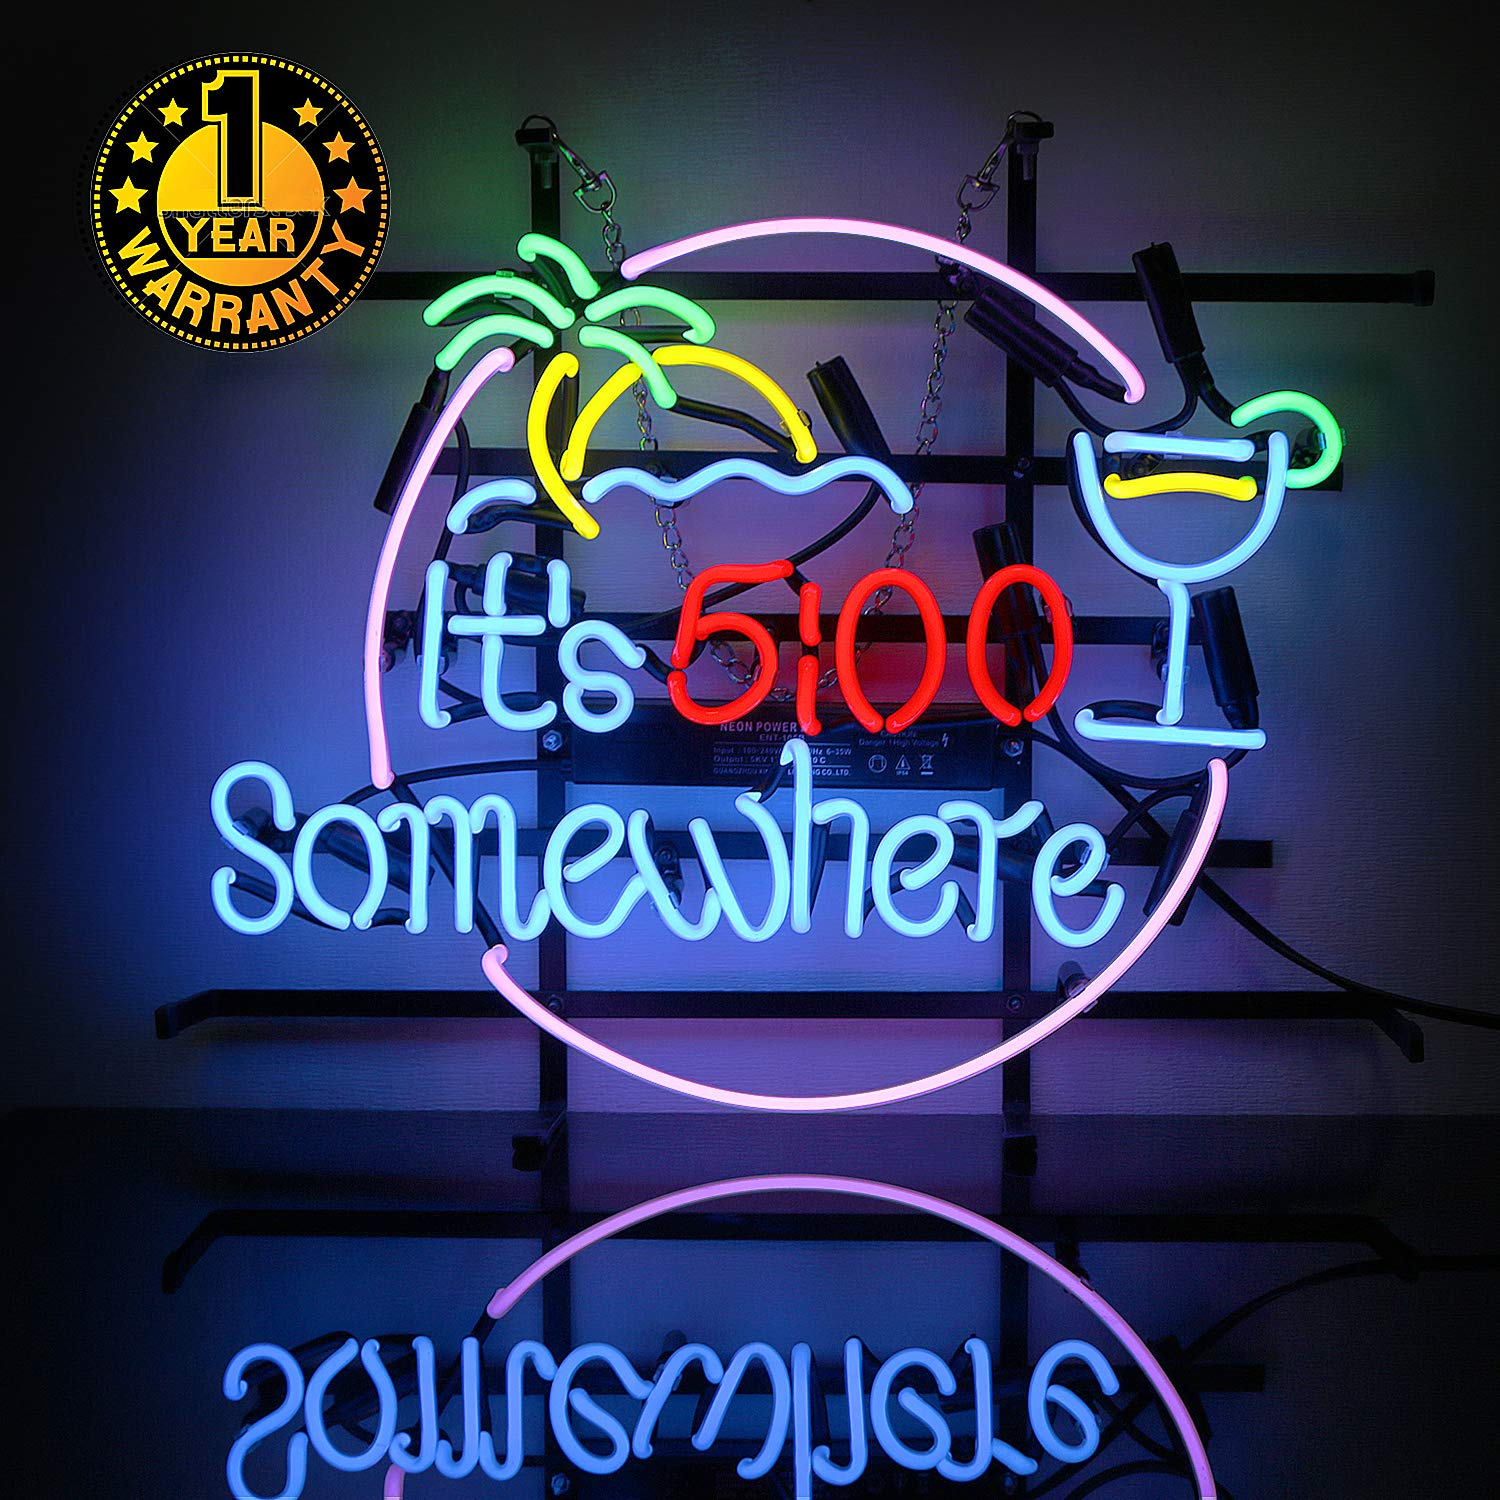 Neon Signs It's 5:00 Somewhere Neon Light Sign Led Neon Lamp, Wall Sign Art  Decorative Signs Lights, Neon Words for Home Bedroom Room Decor Bar Beer